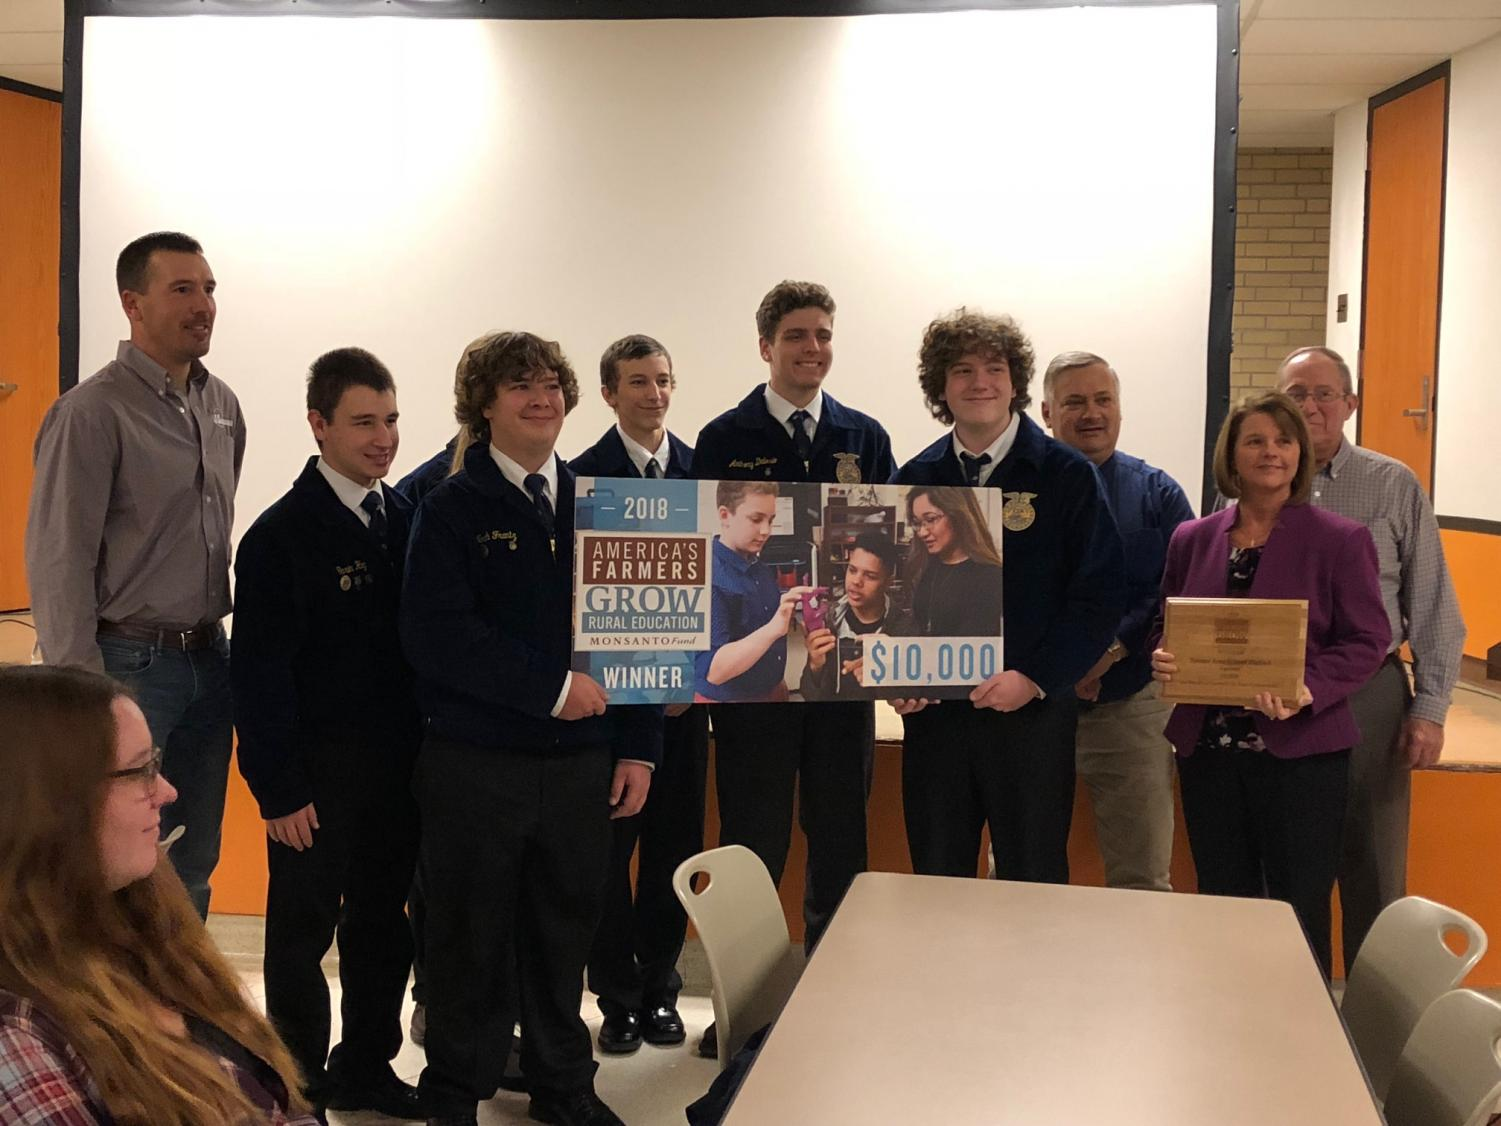 The FFA students were presented with a $10,000 grant